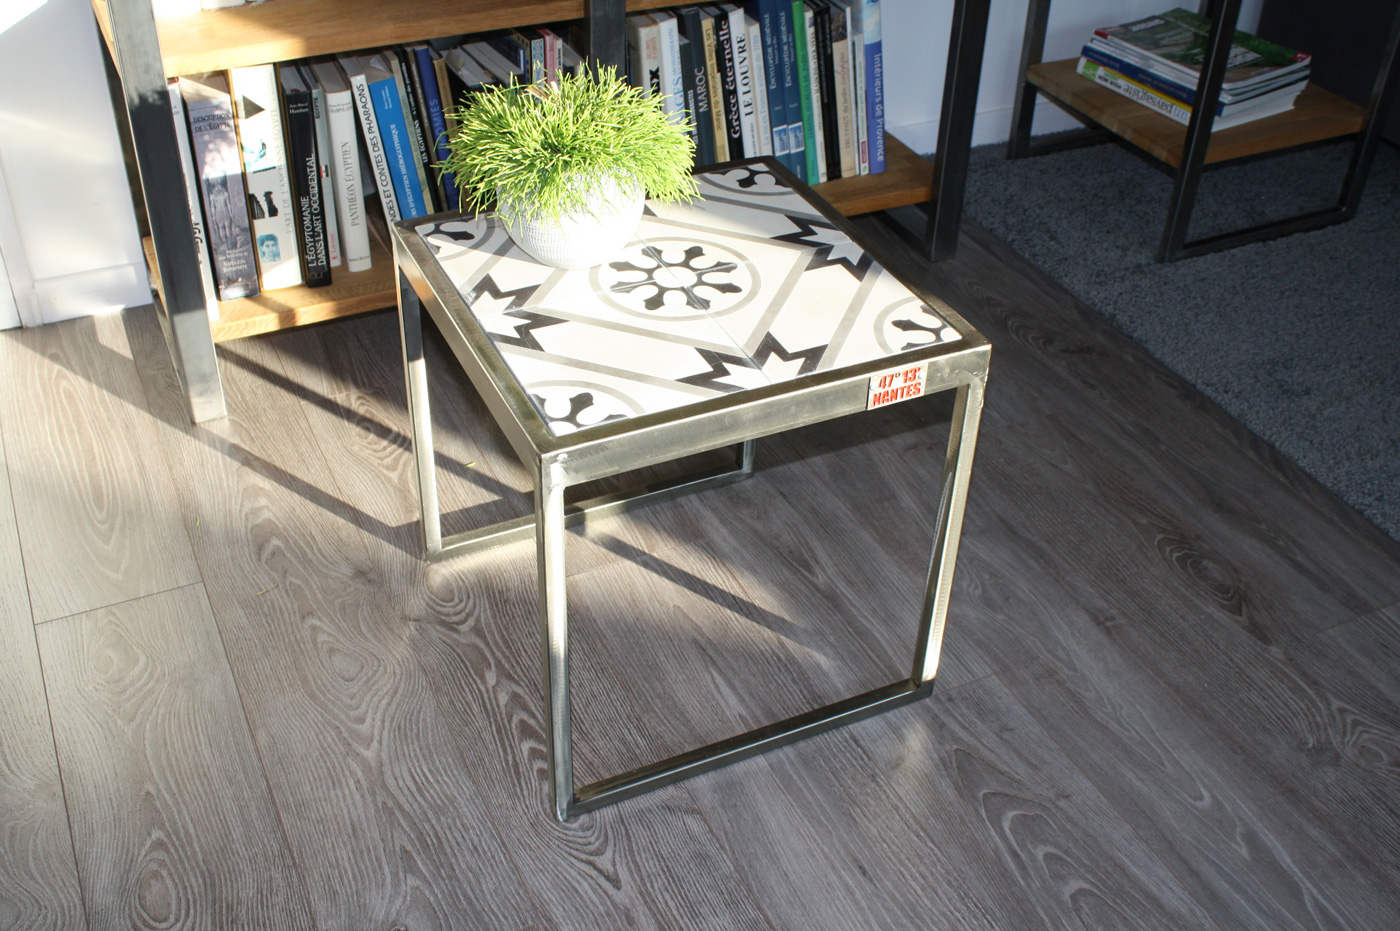 Table base carreaux de ciment